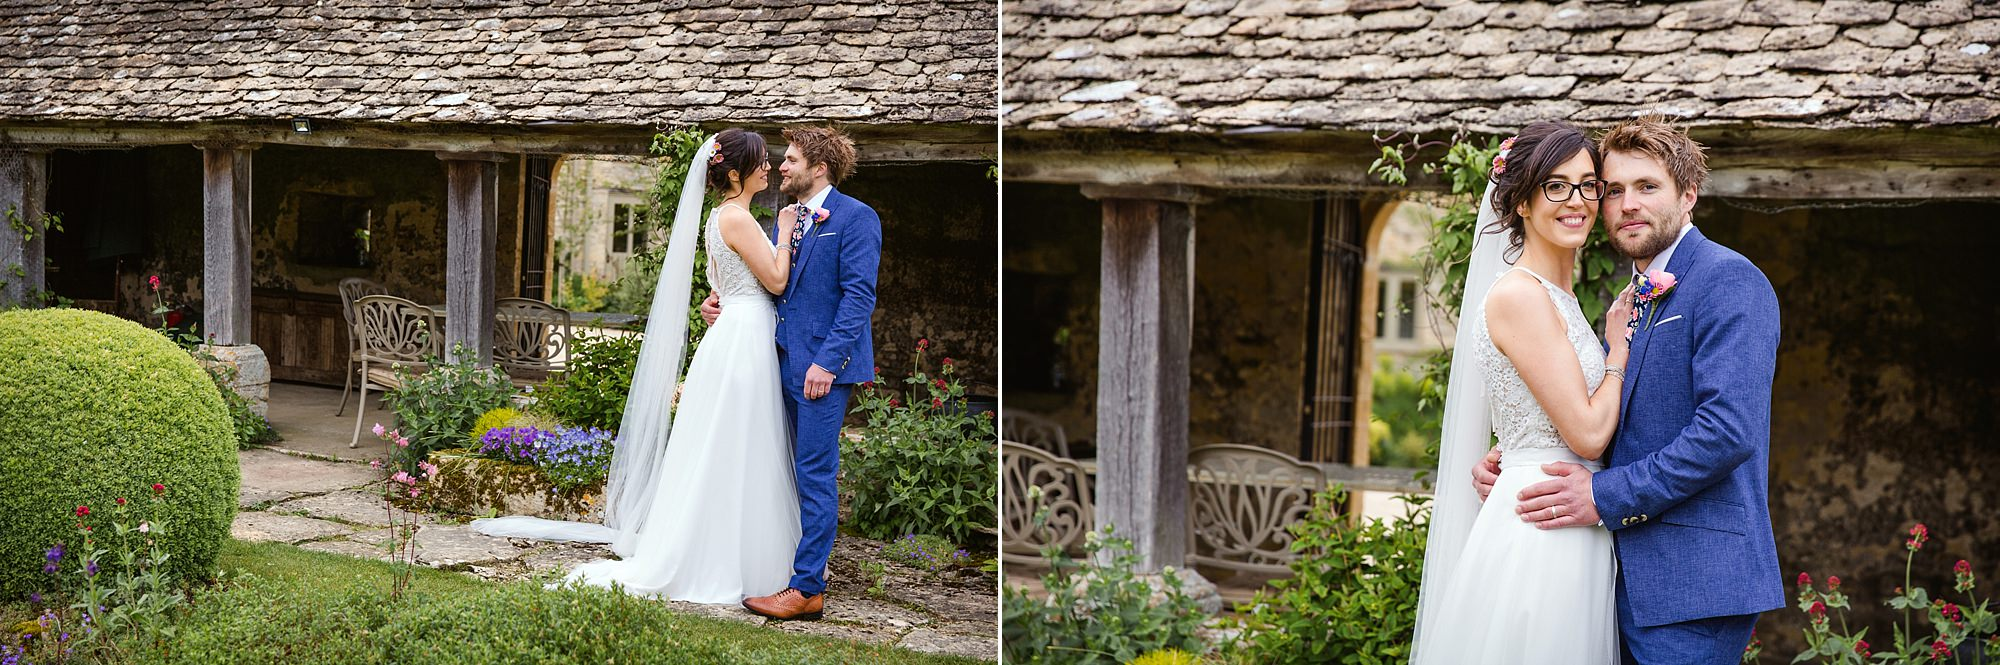 Caswell House Wedding portrait off bride and groom in front of the rustic shed